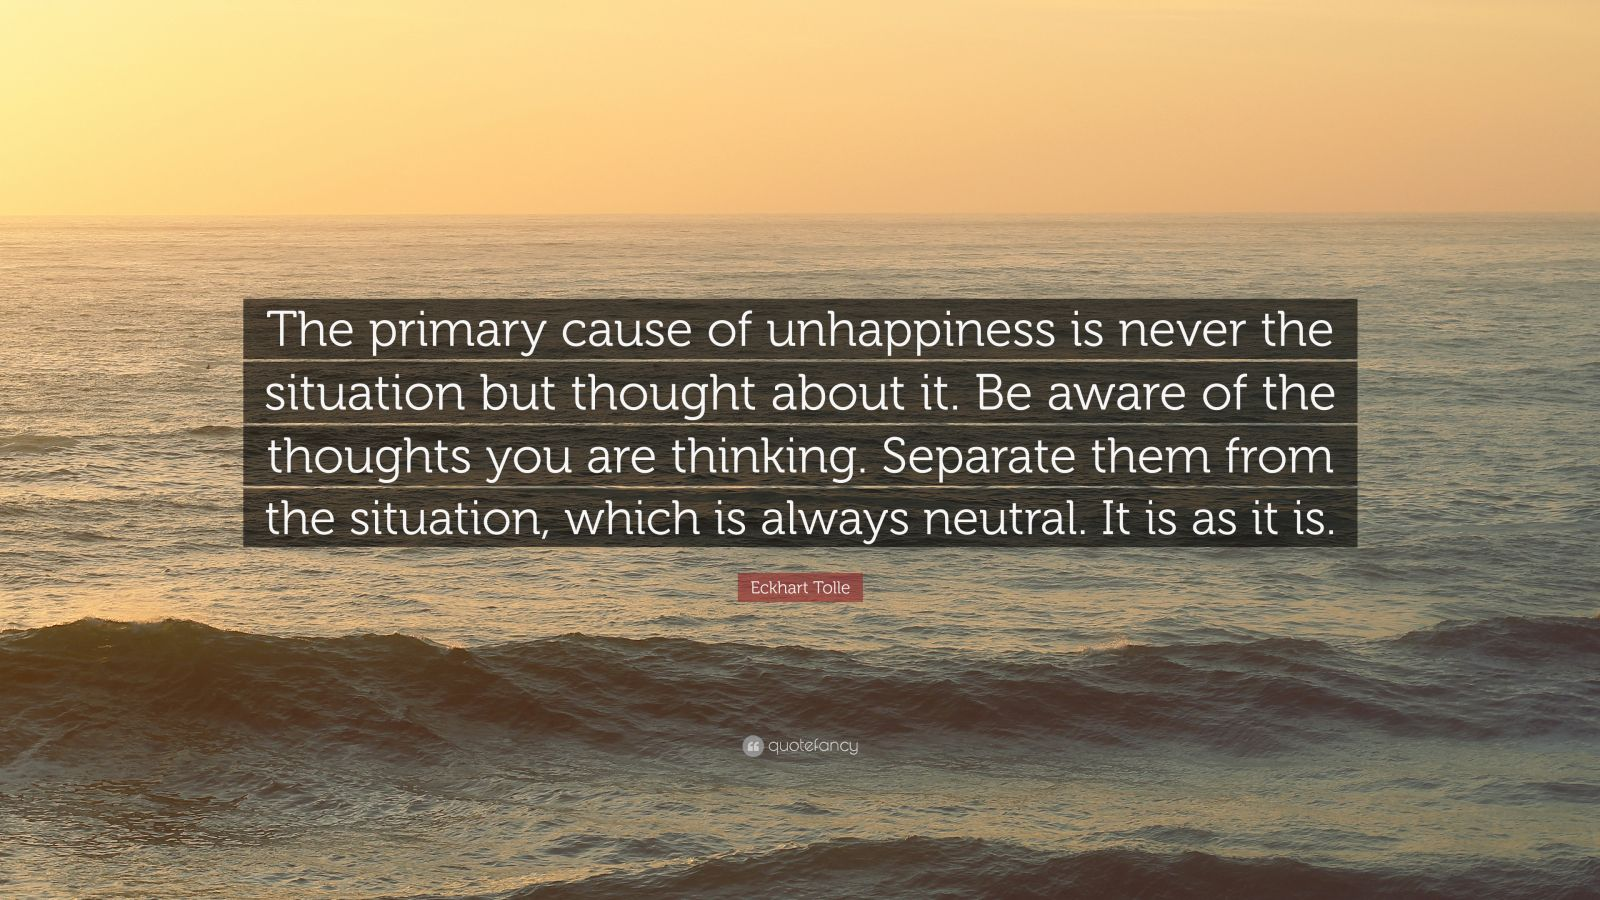 [Image]The Primary Cause of Unhappiness